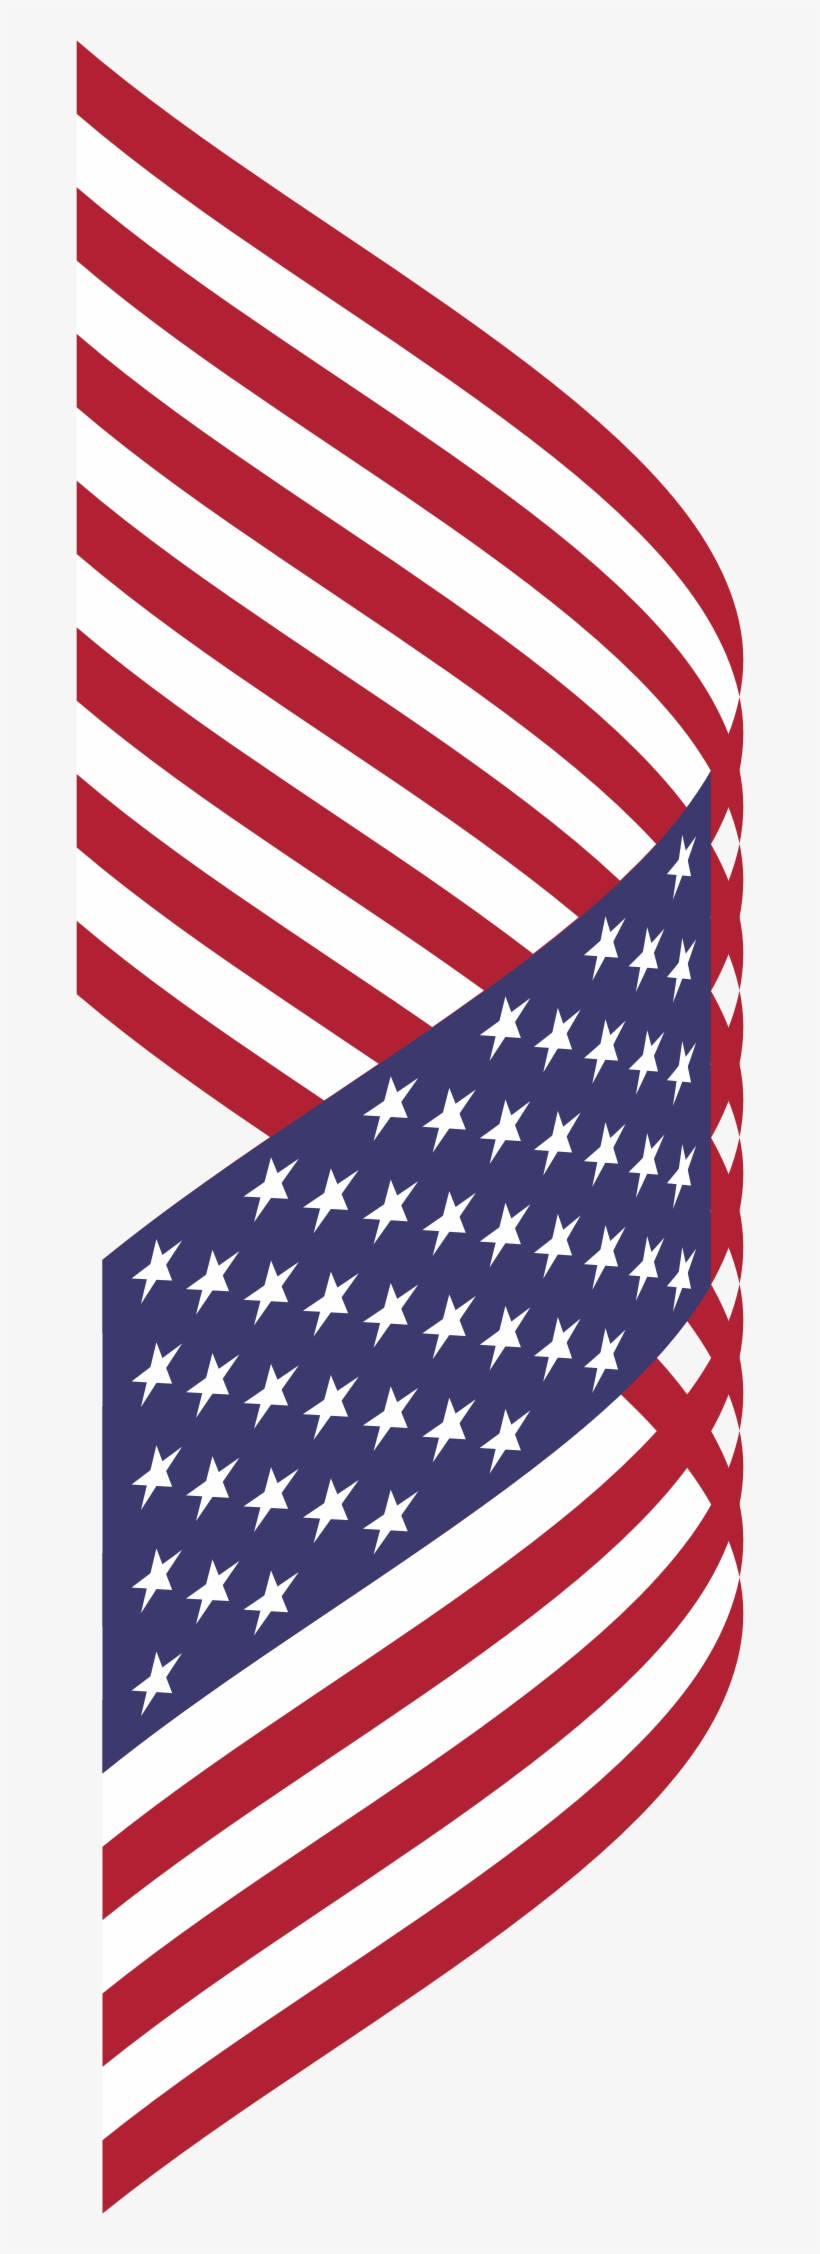 This Free Icons Png Design Of American Flag Breezy